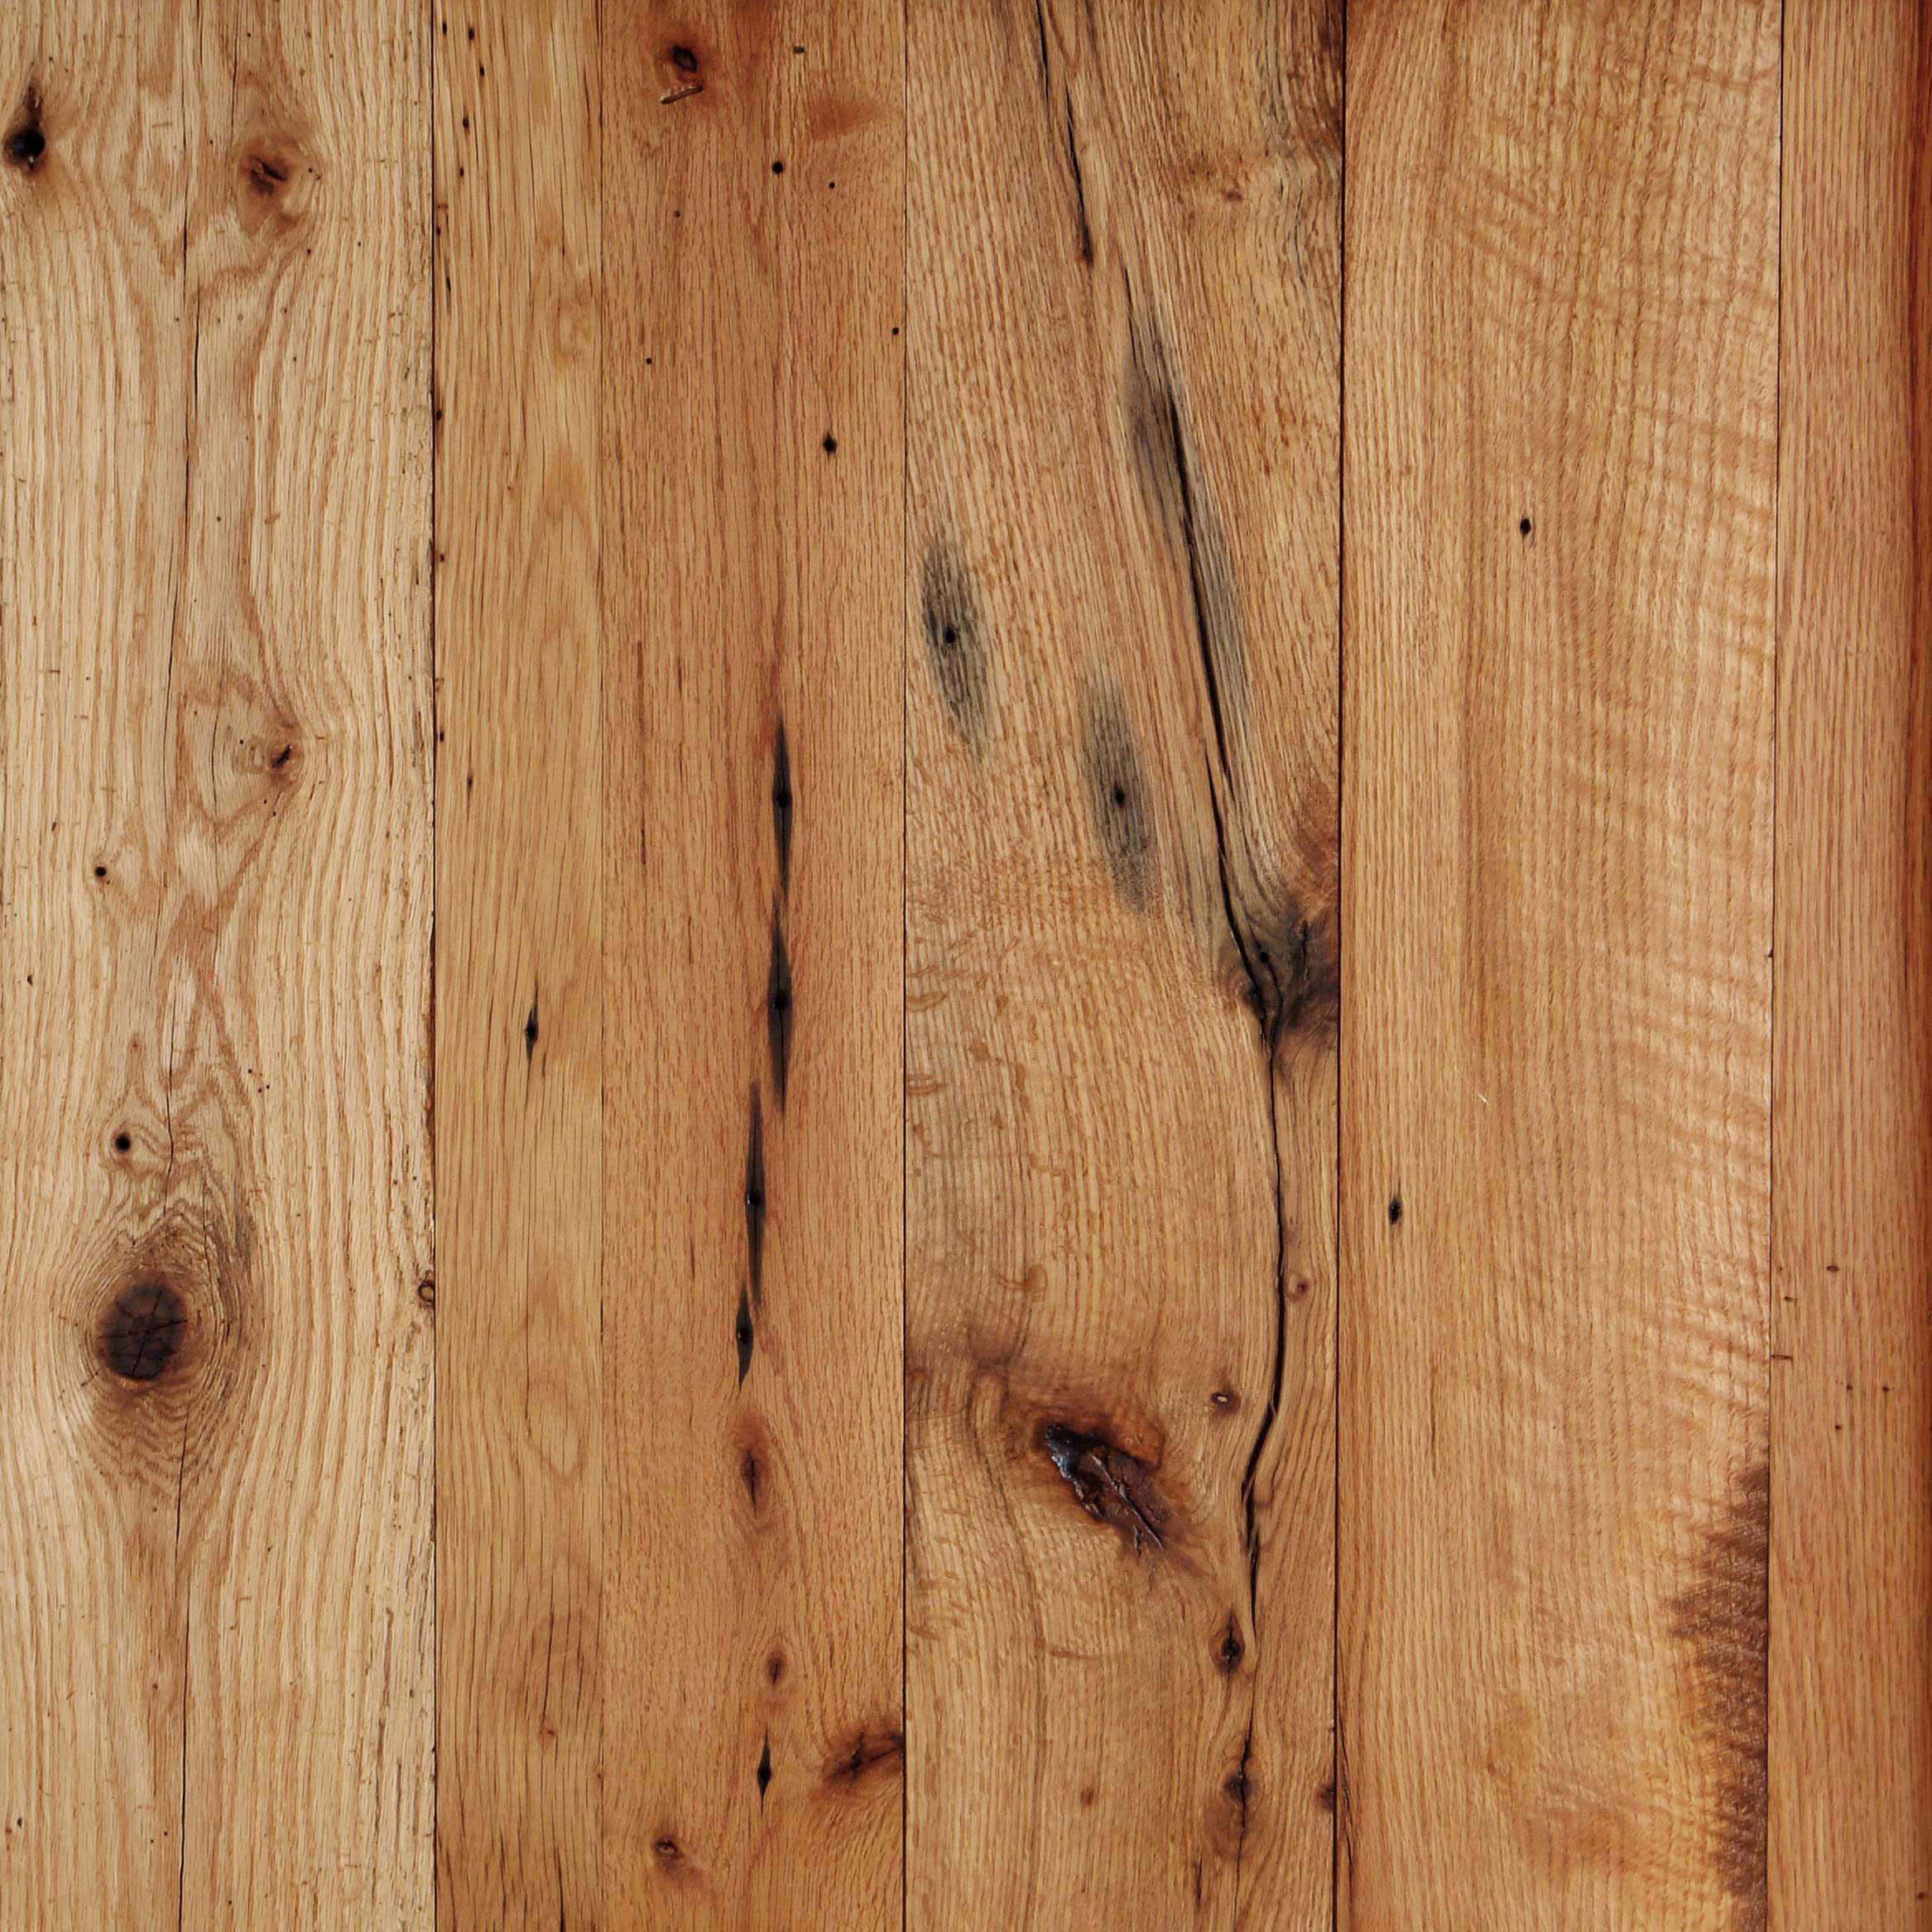 1.5 oak hardwood flooring of longleaf lumber reclaimed red white oak wood for reclaimed salvaged antique red oak flooring wide boards knots